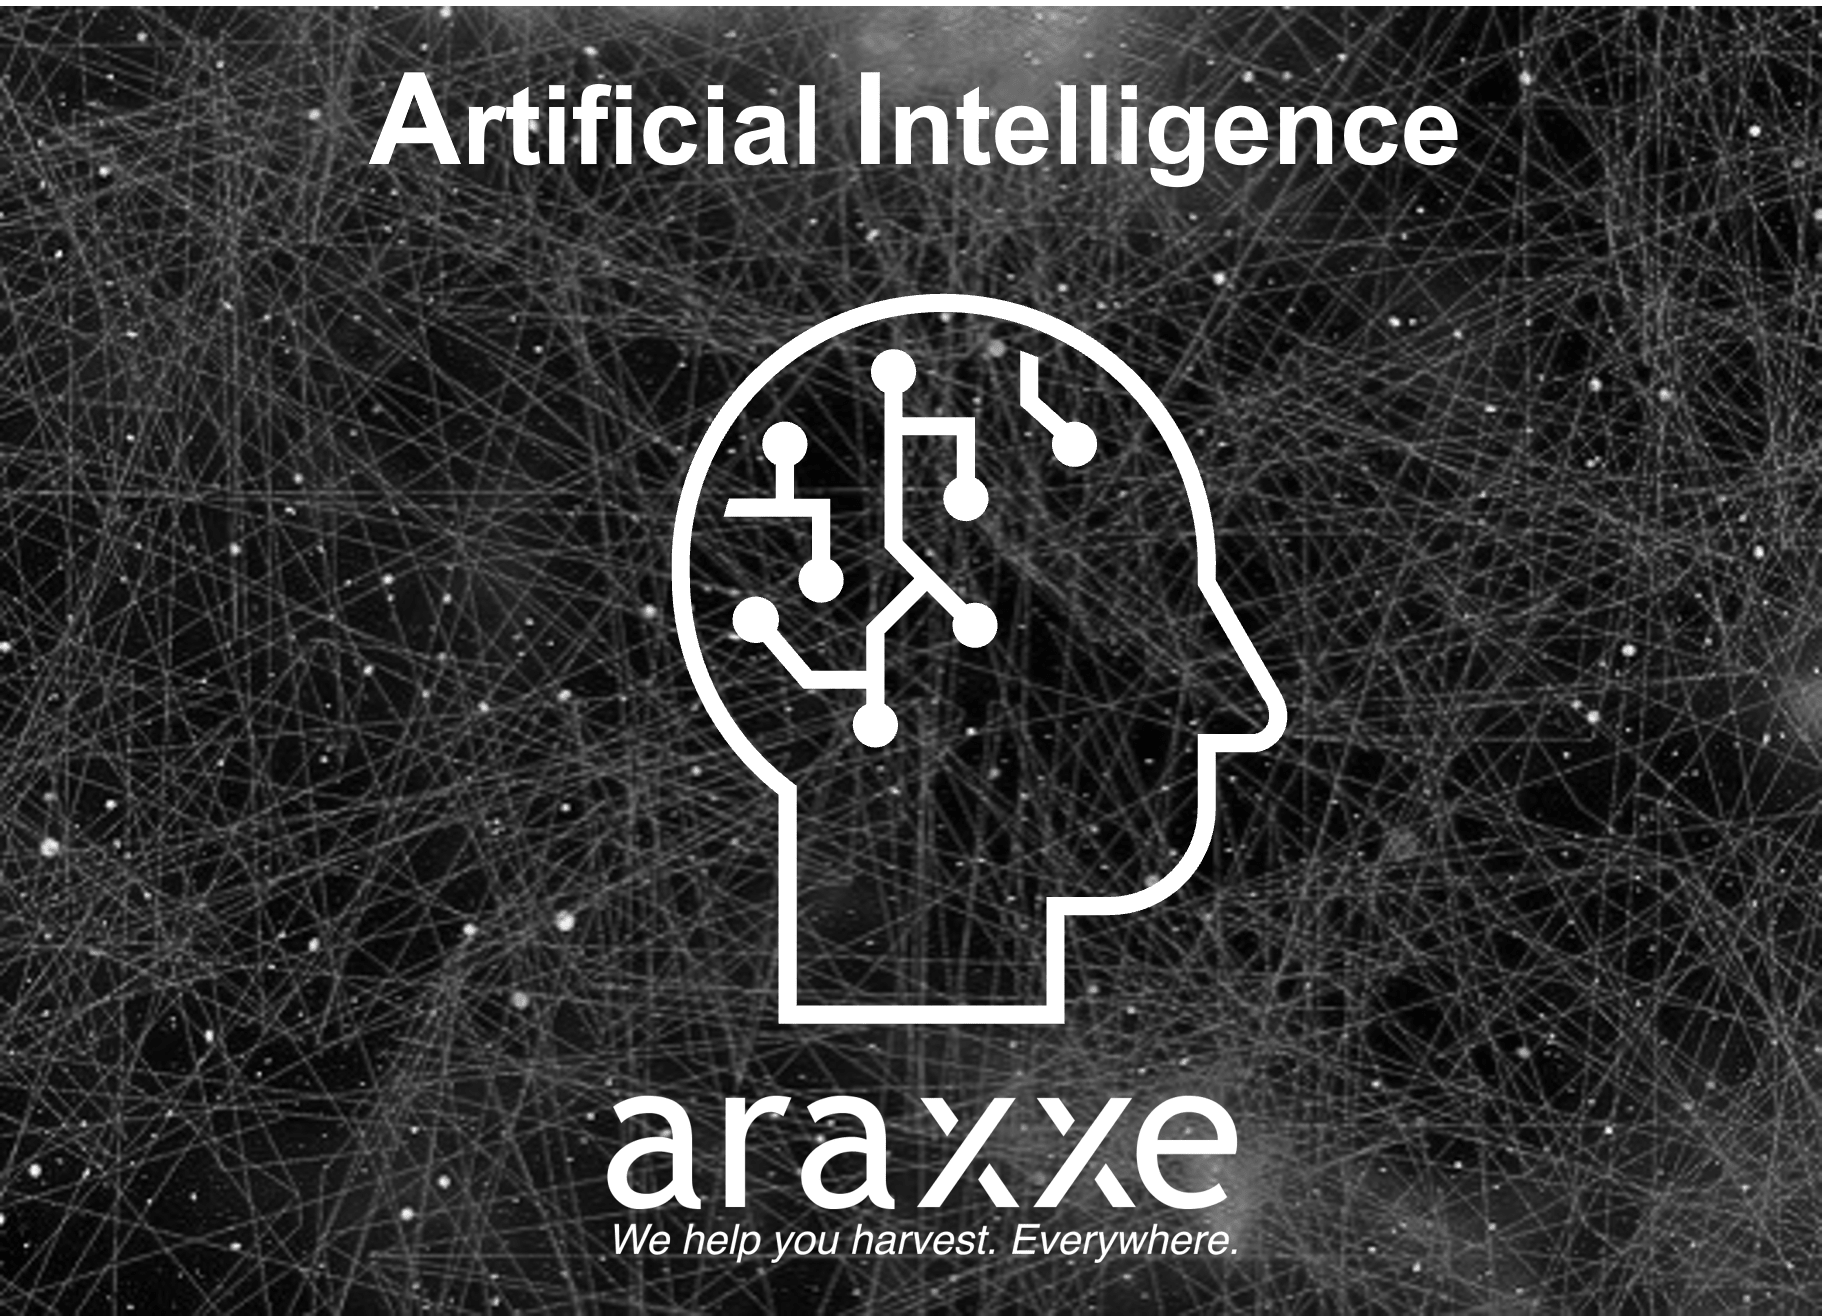 Did you know #4 Artificial Intelligence